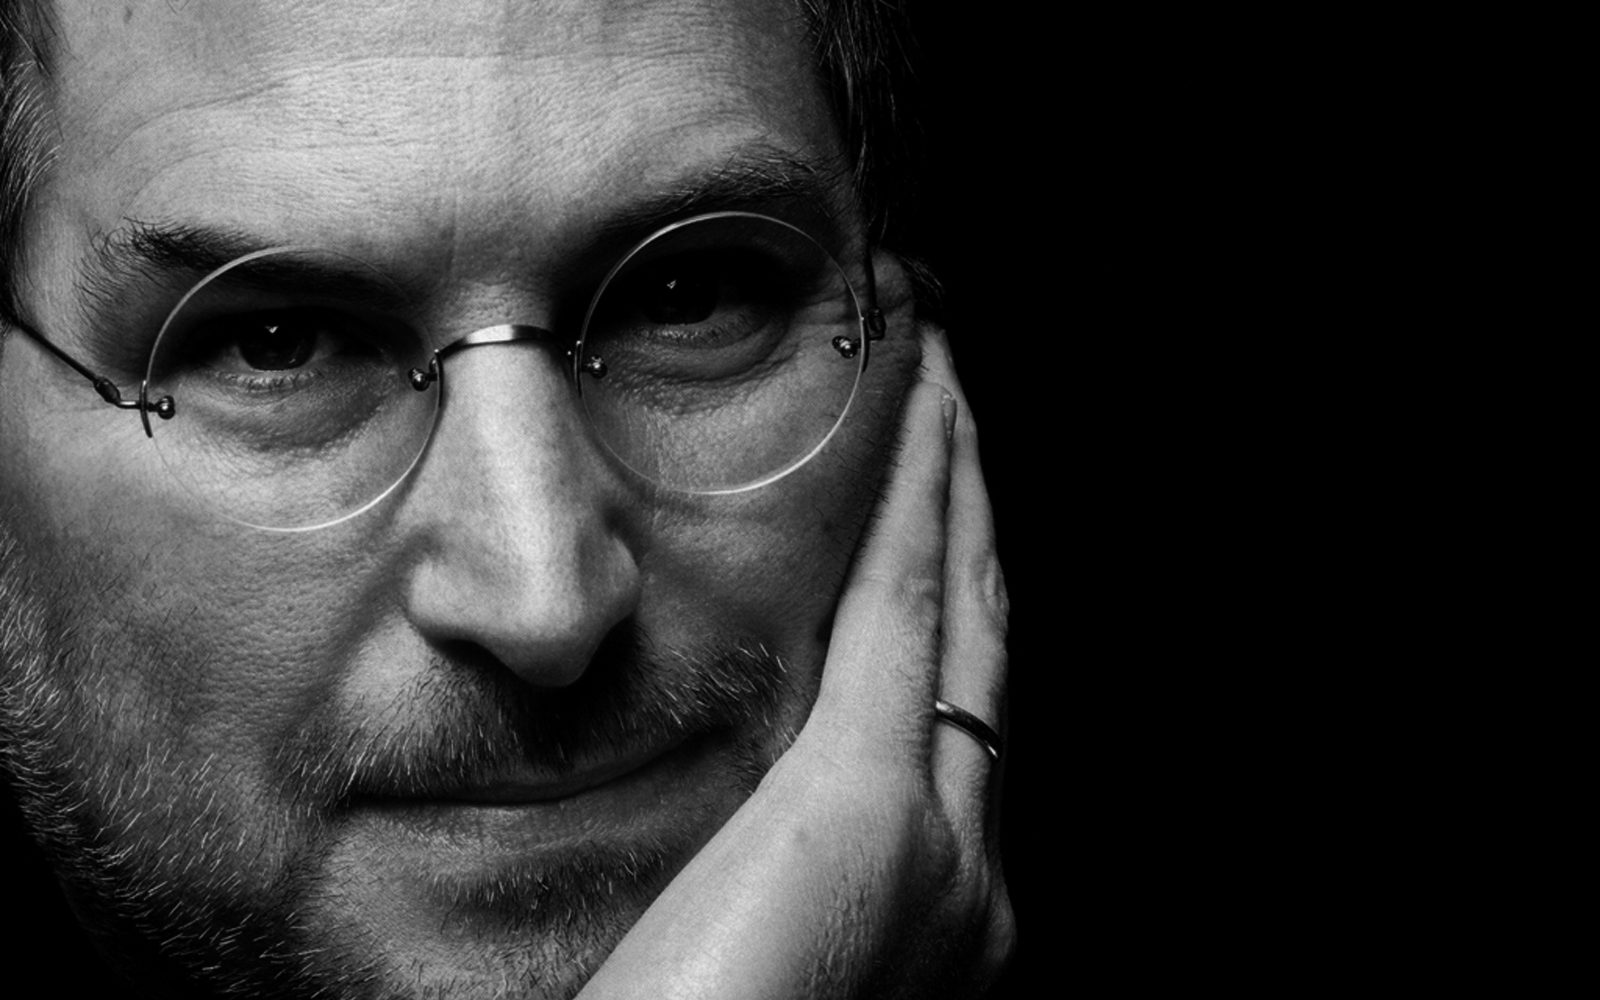 Steve Jobs had plans to make free, shared Wi-Fi the norm to improve iPhone experience